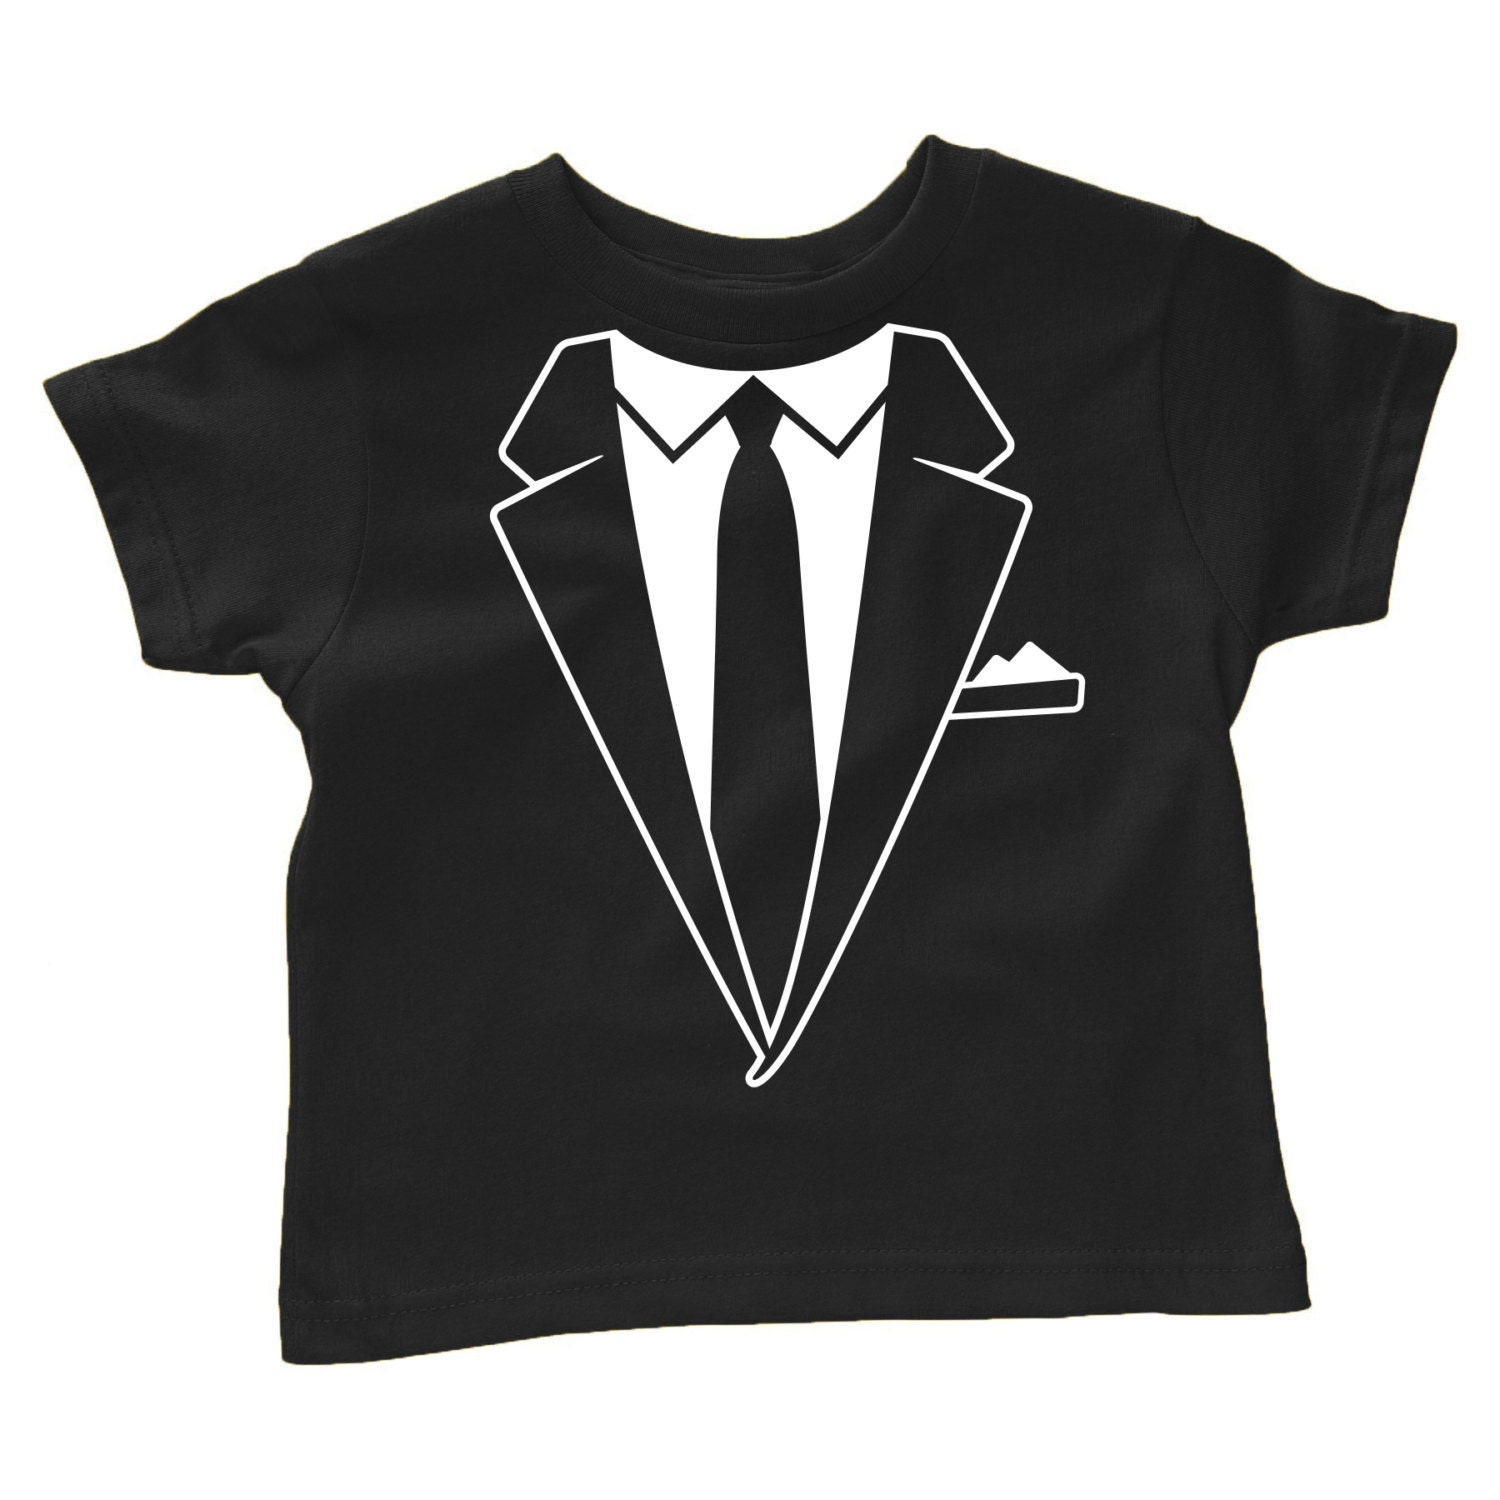 suit and tie toddler t shirt 2t 7